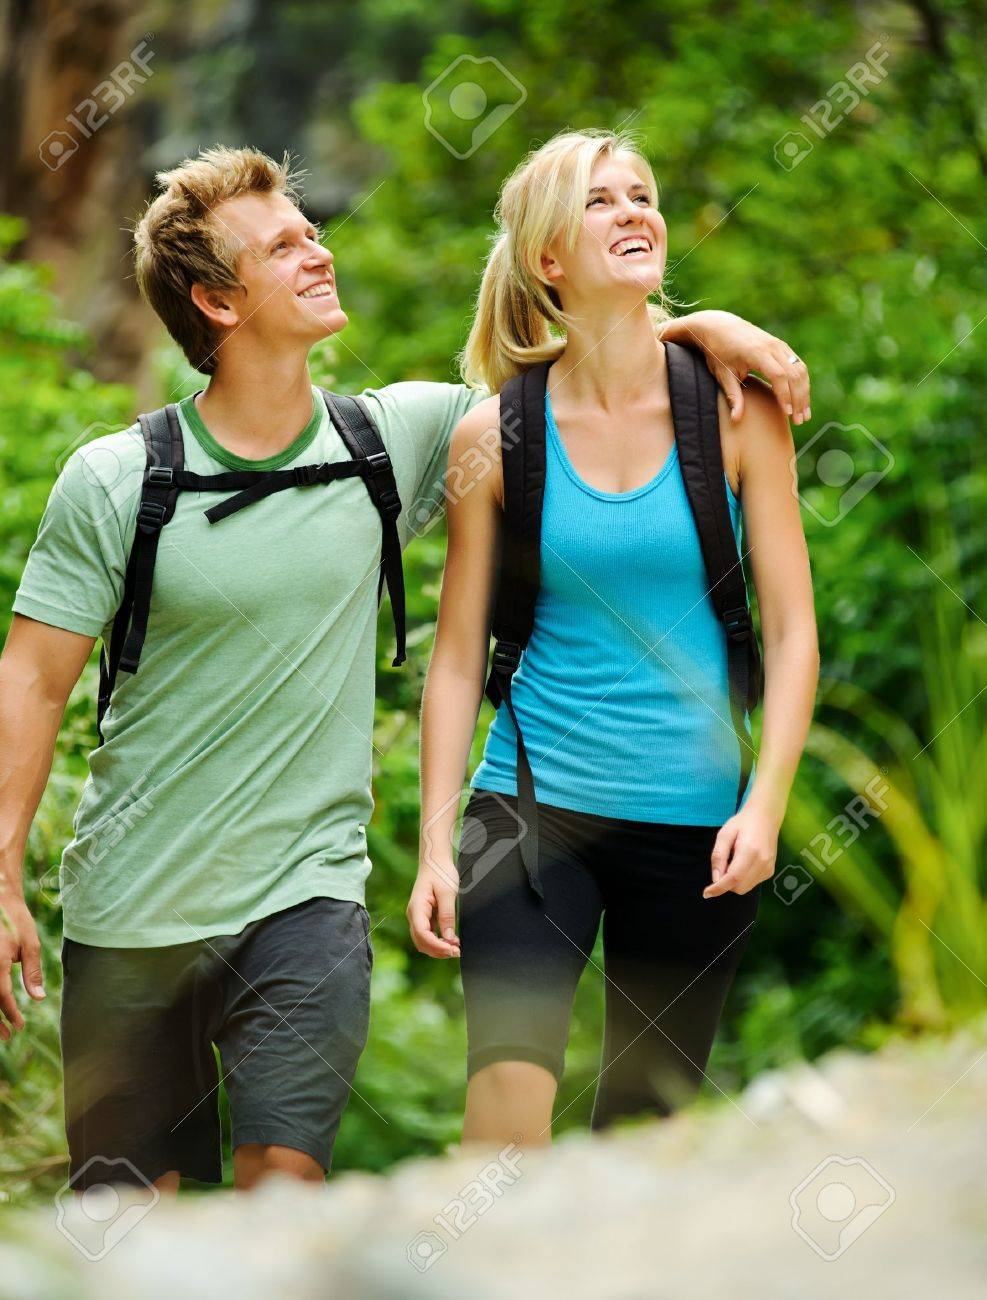 cute couple have fun together outdoors on a hike Stock Photo - 8921592